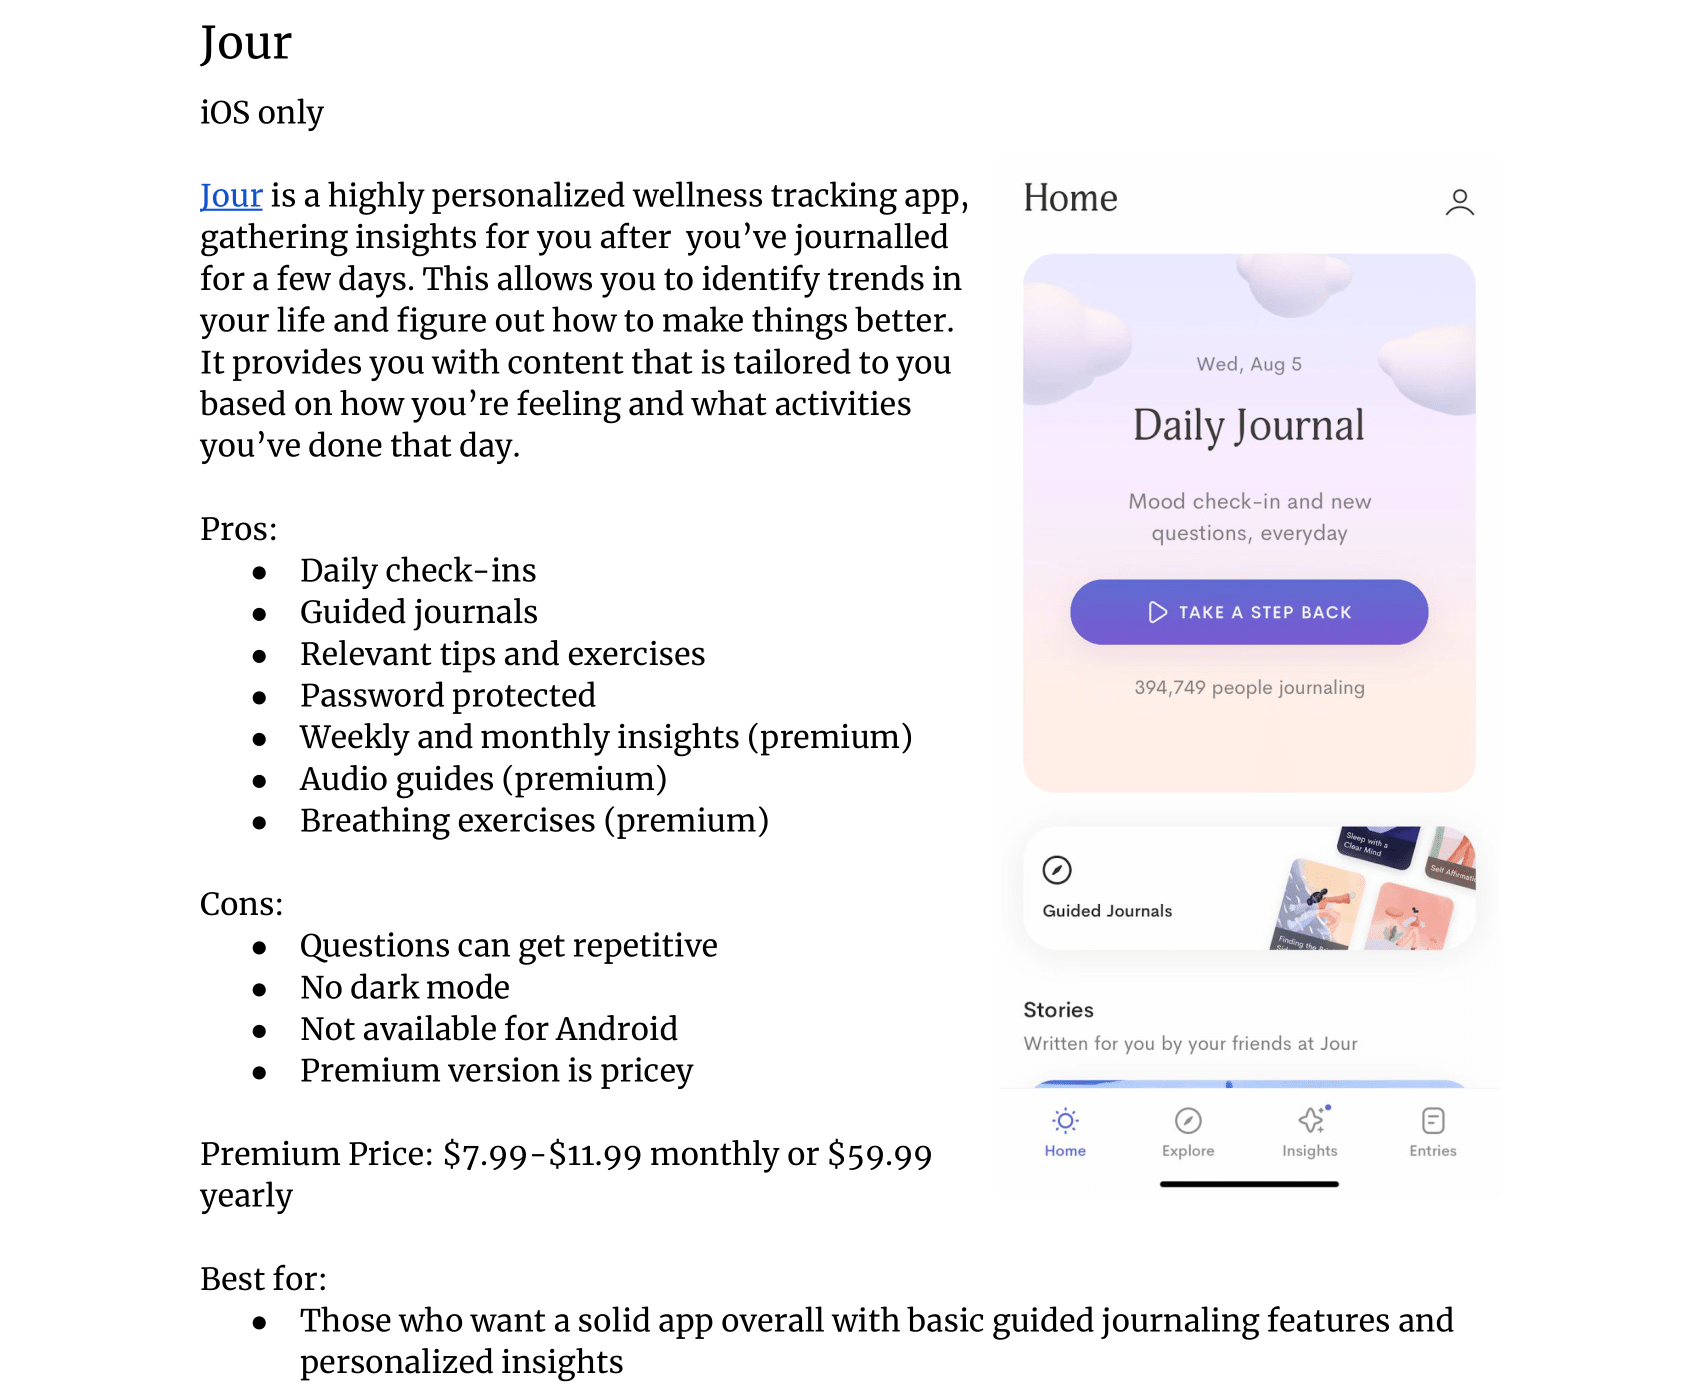 fj7-Best-Apps-for-Daily-Wellness-Journaling-2